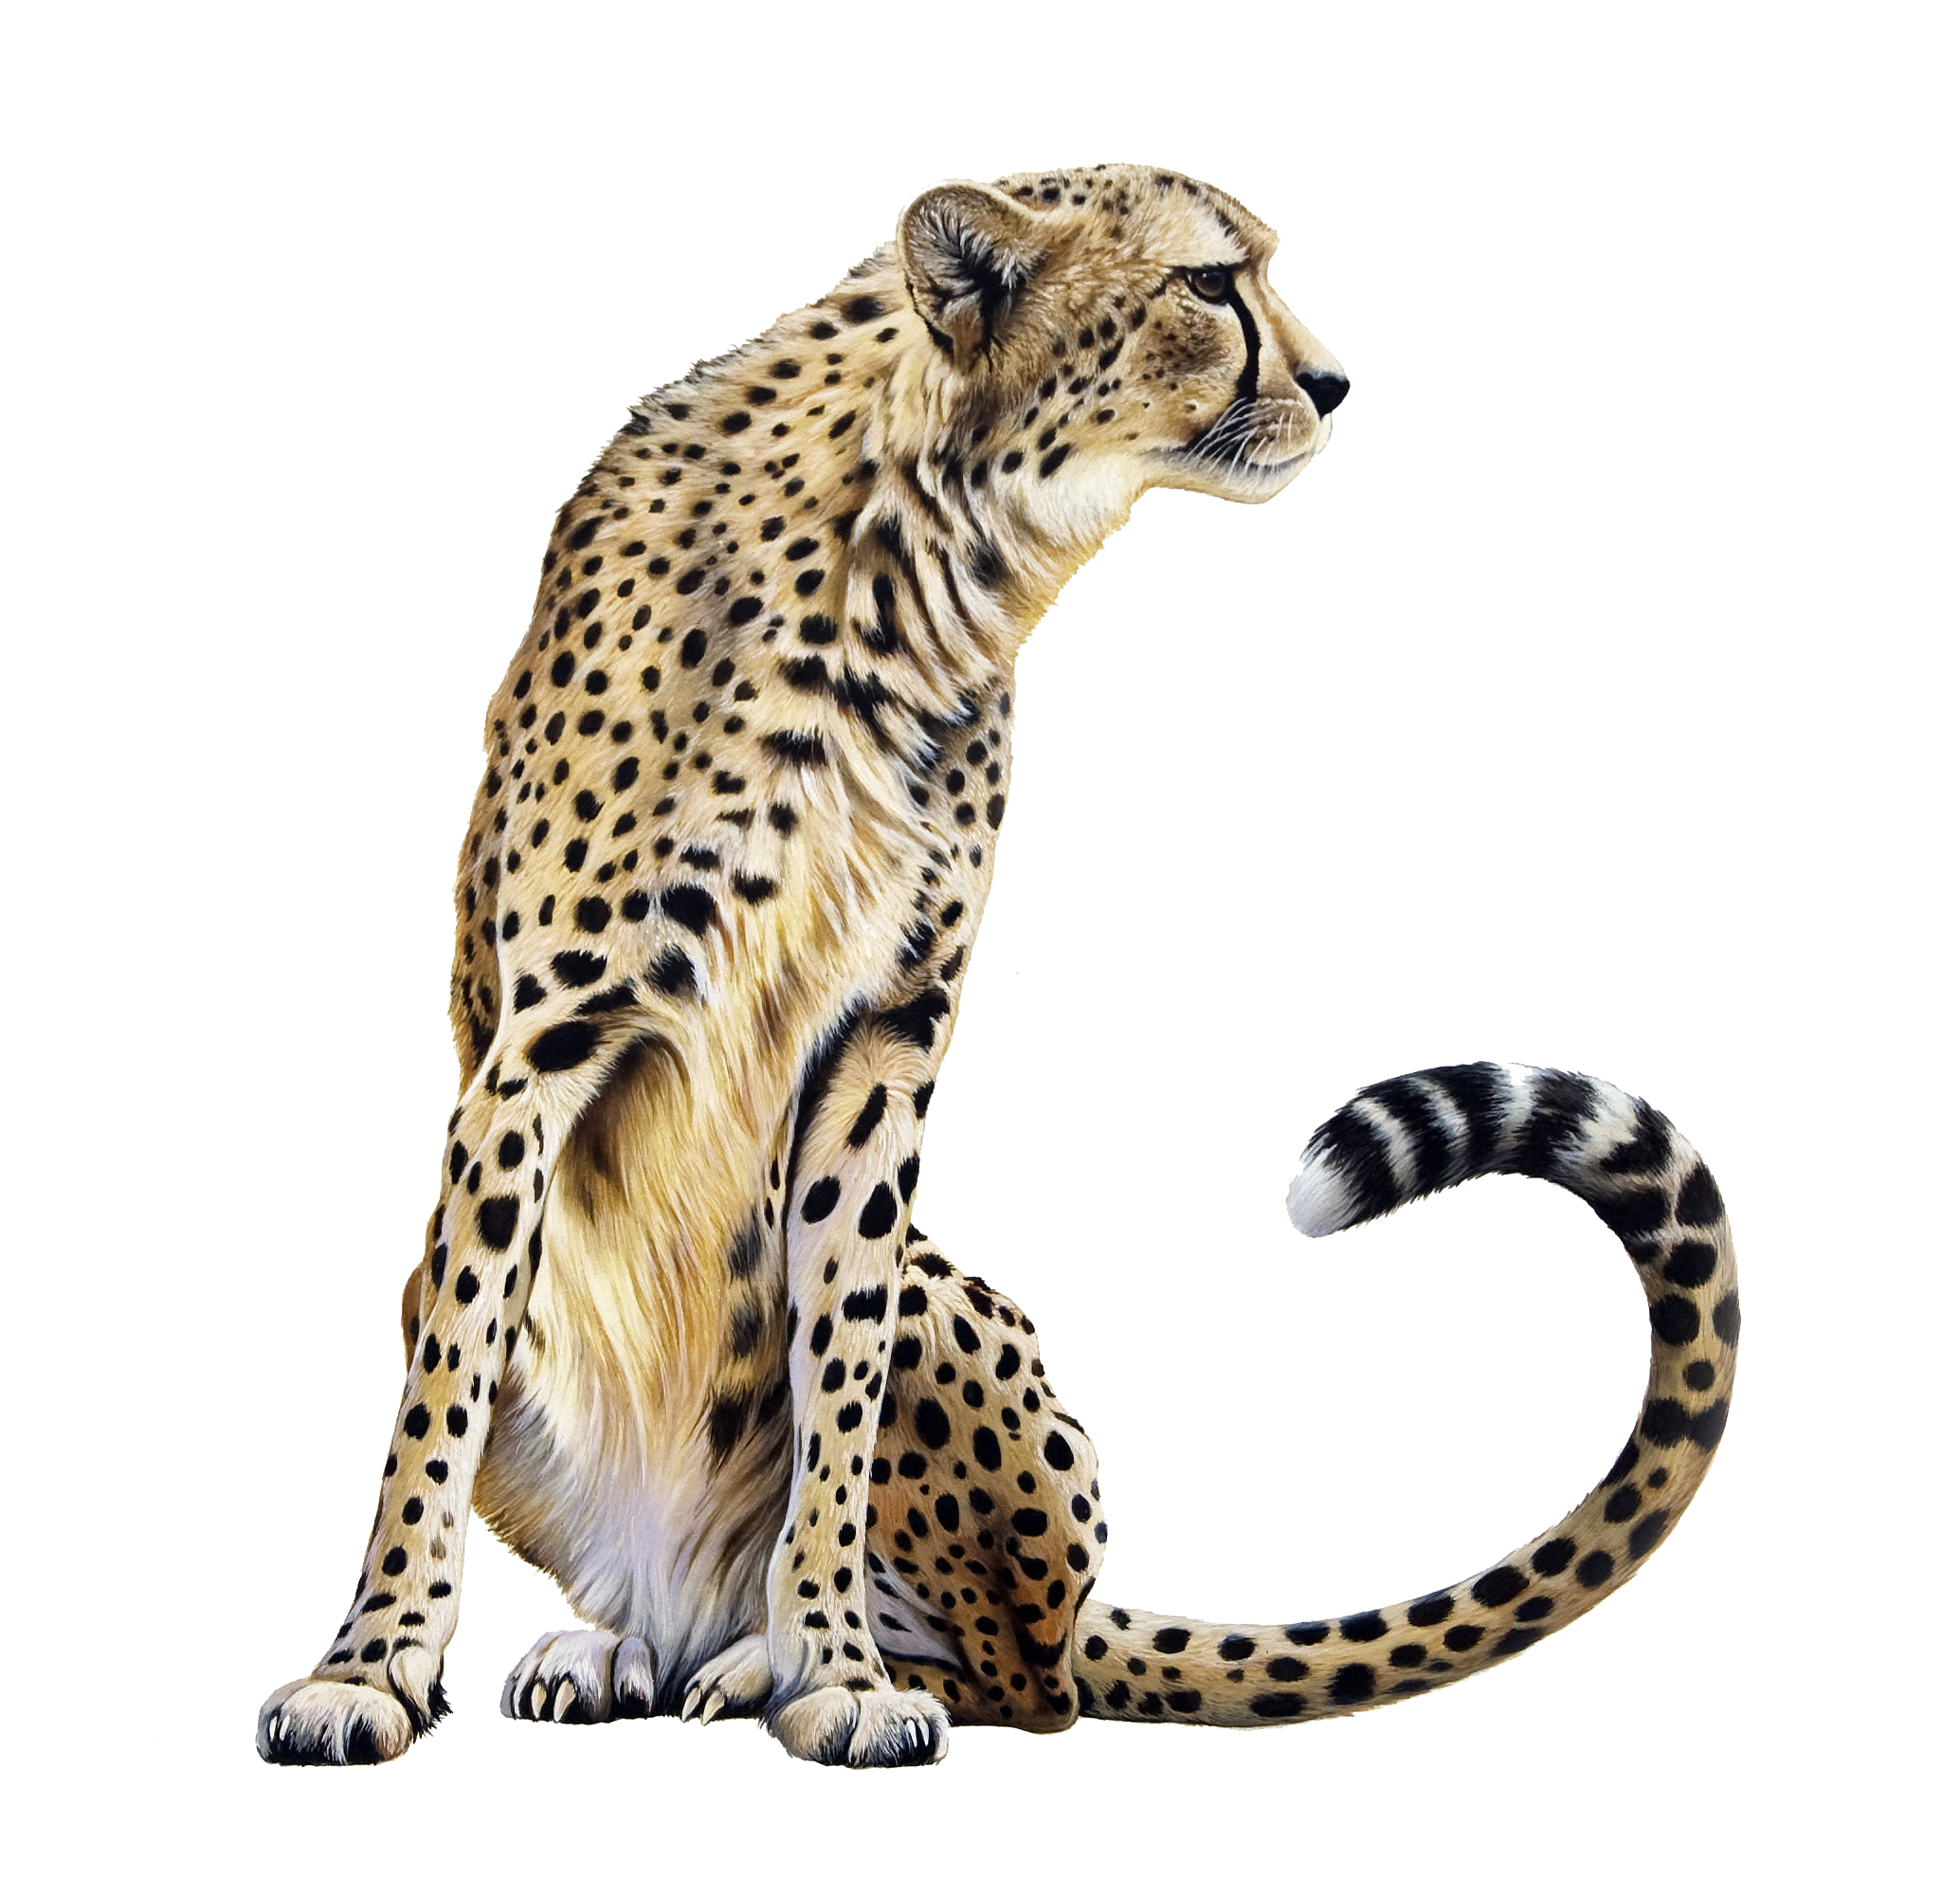 Cheetah Sitting PNG Image